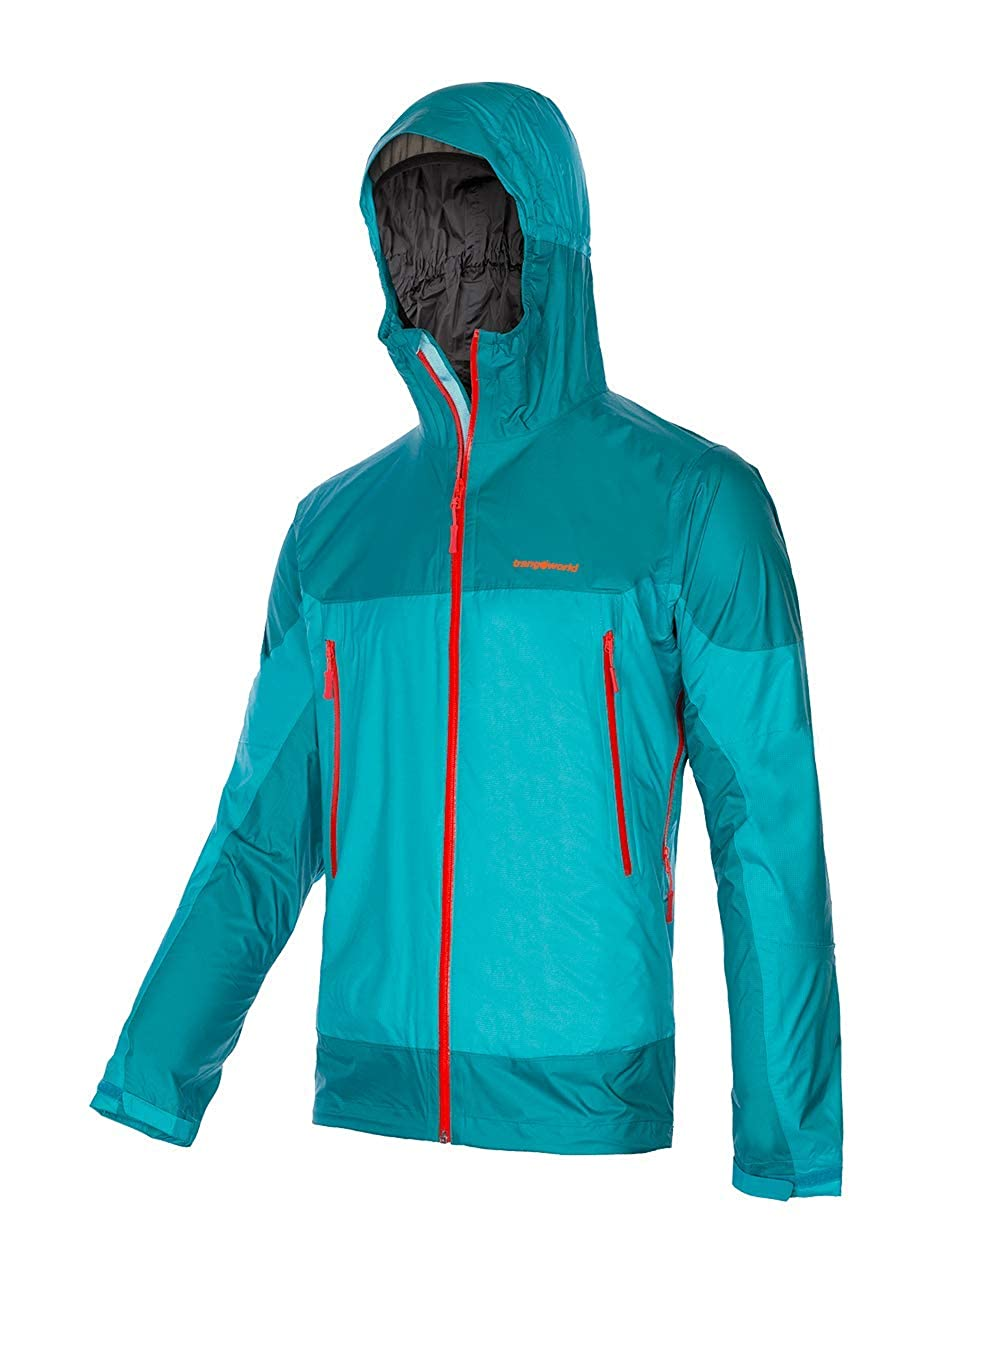 Lake bluee + bluee L Trangoworld Men's Rilton Tf Jacket